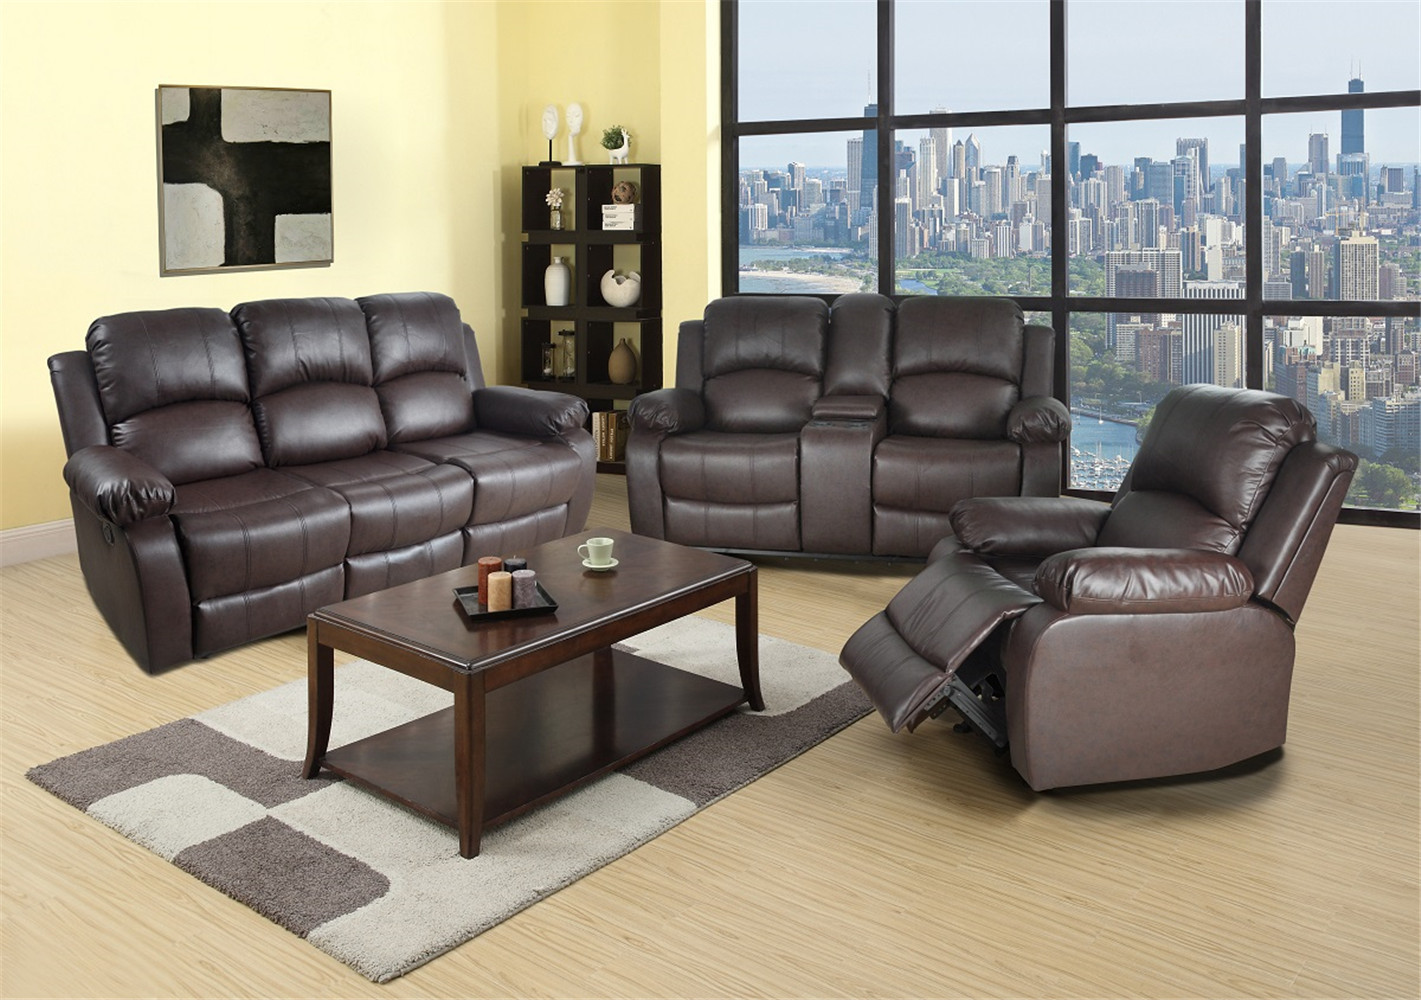 Picture of: Reclining Sofa Loveseat Chair Set Living Room Set Walmart Com Walmart Com